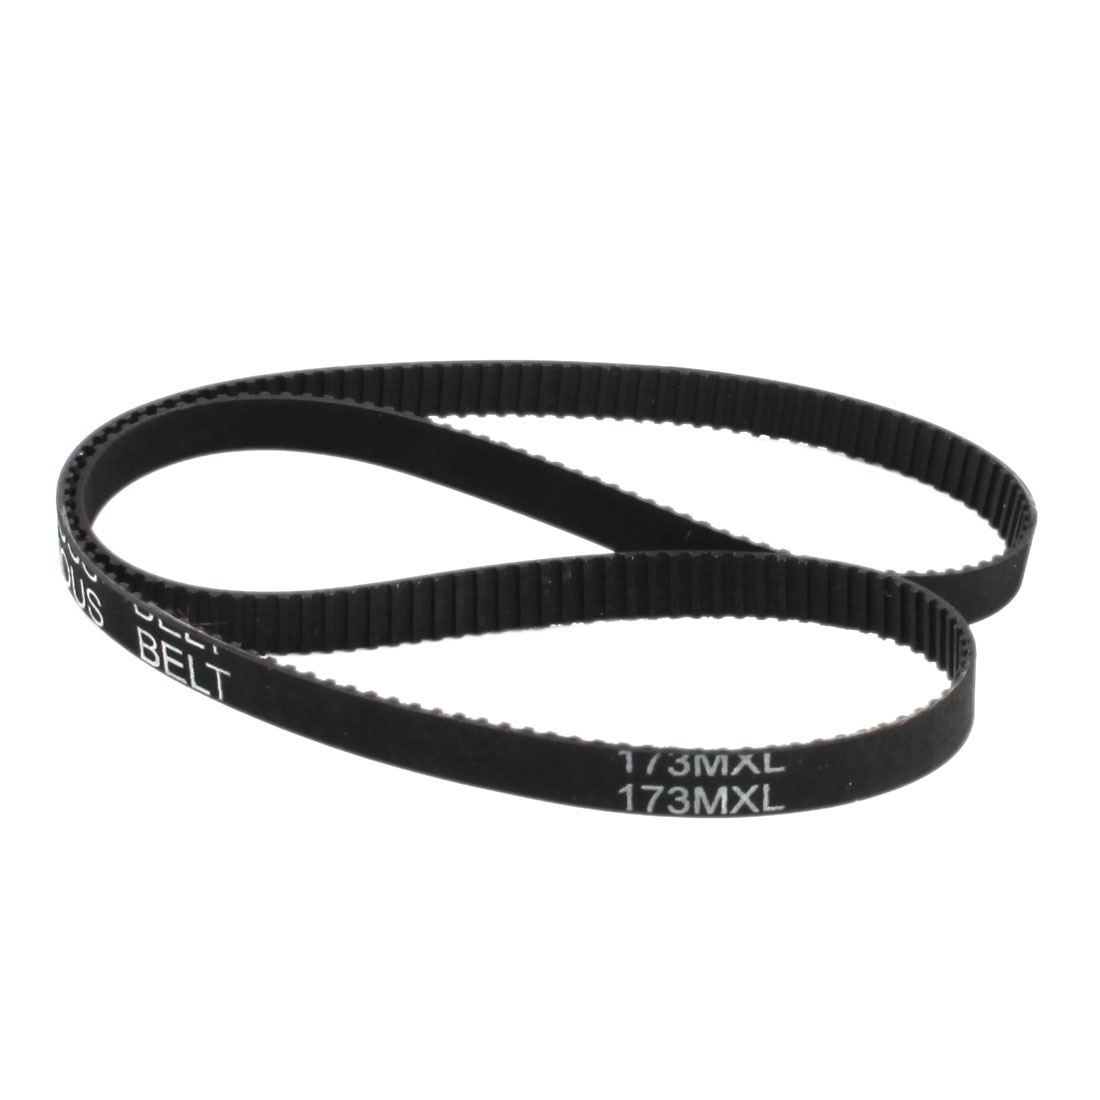 173MXL025 216-Tooth 2.032mm Pitch 6.4mm Width Black Industrial Stepper Motor Groove Synchronous Timing Belt 17.3""